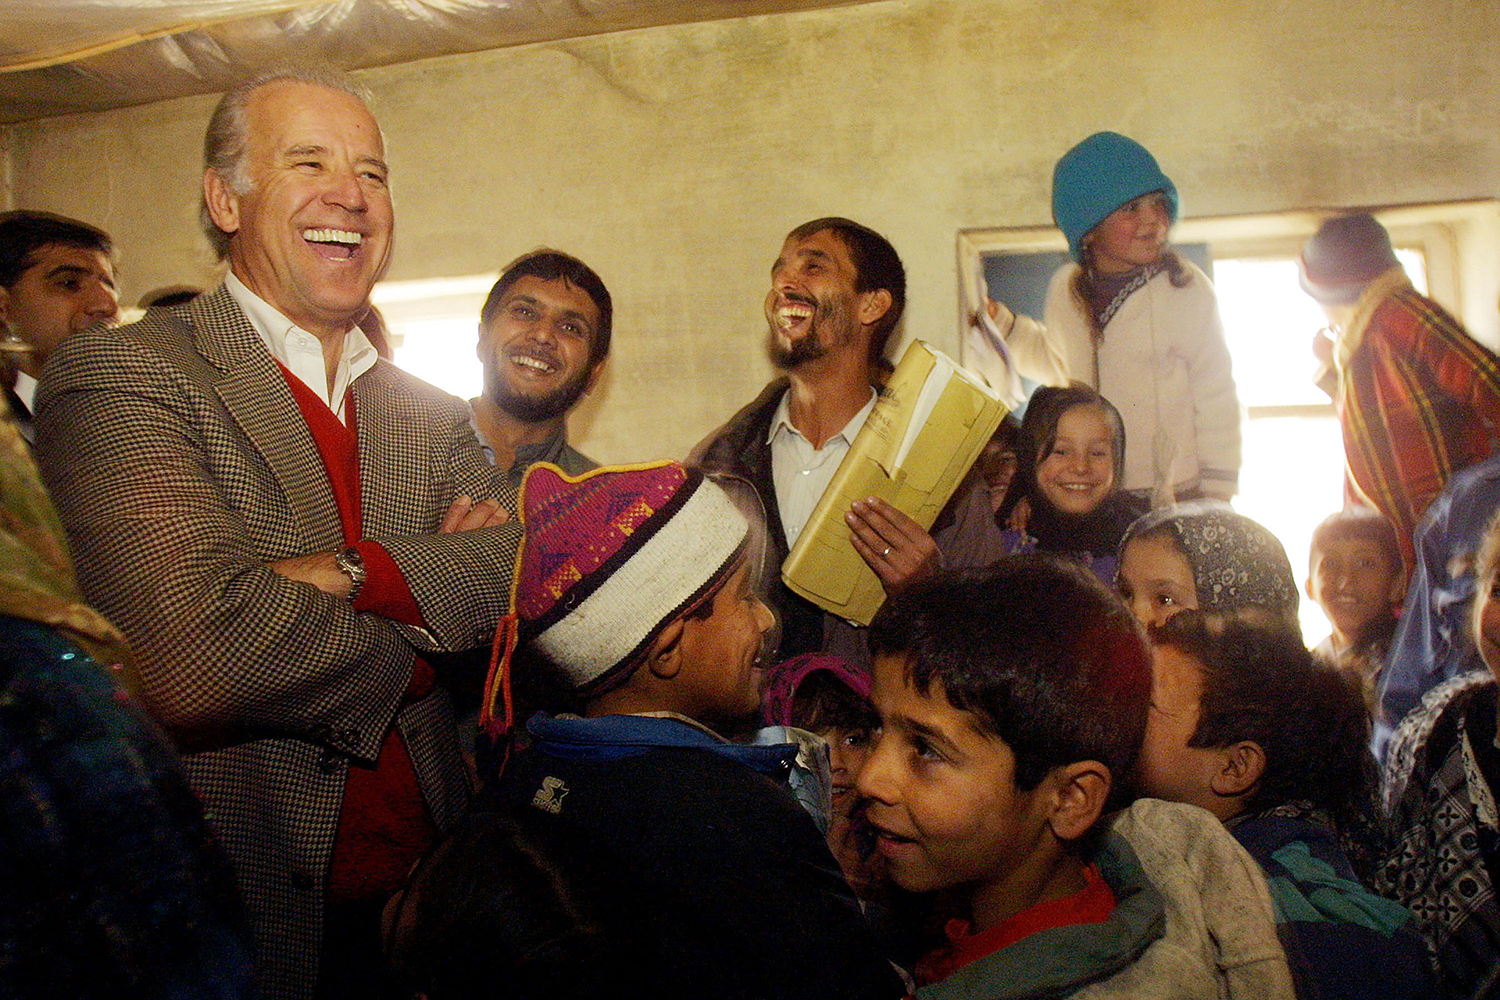 As Foreign Relations Committee Chairman, Biden shares a laugh with Afghan students at Ariana High School during his visit to Kabul, Afghanistan, on Jan. 12, 2002.